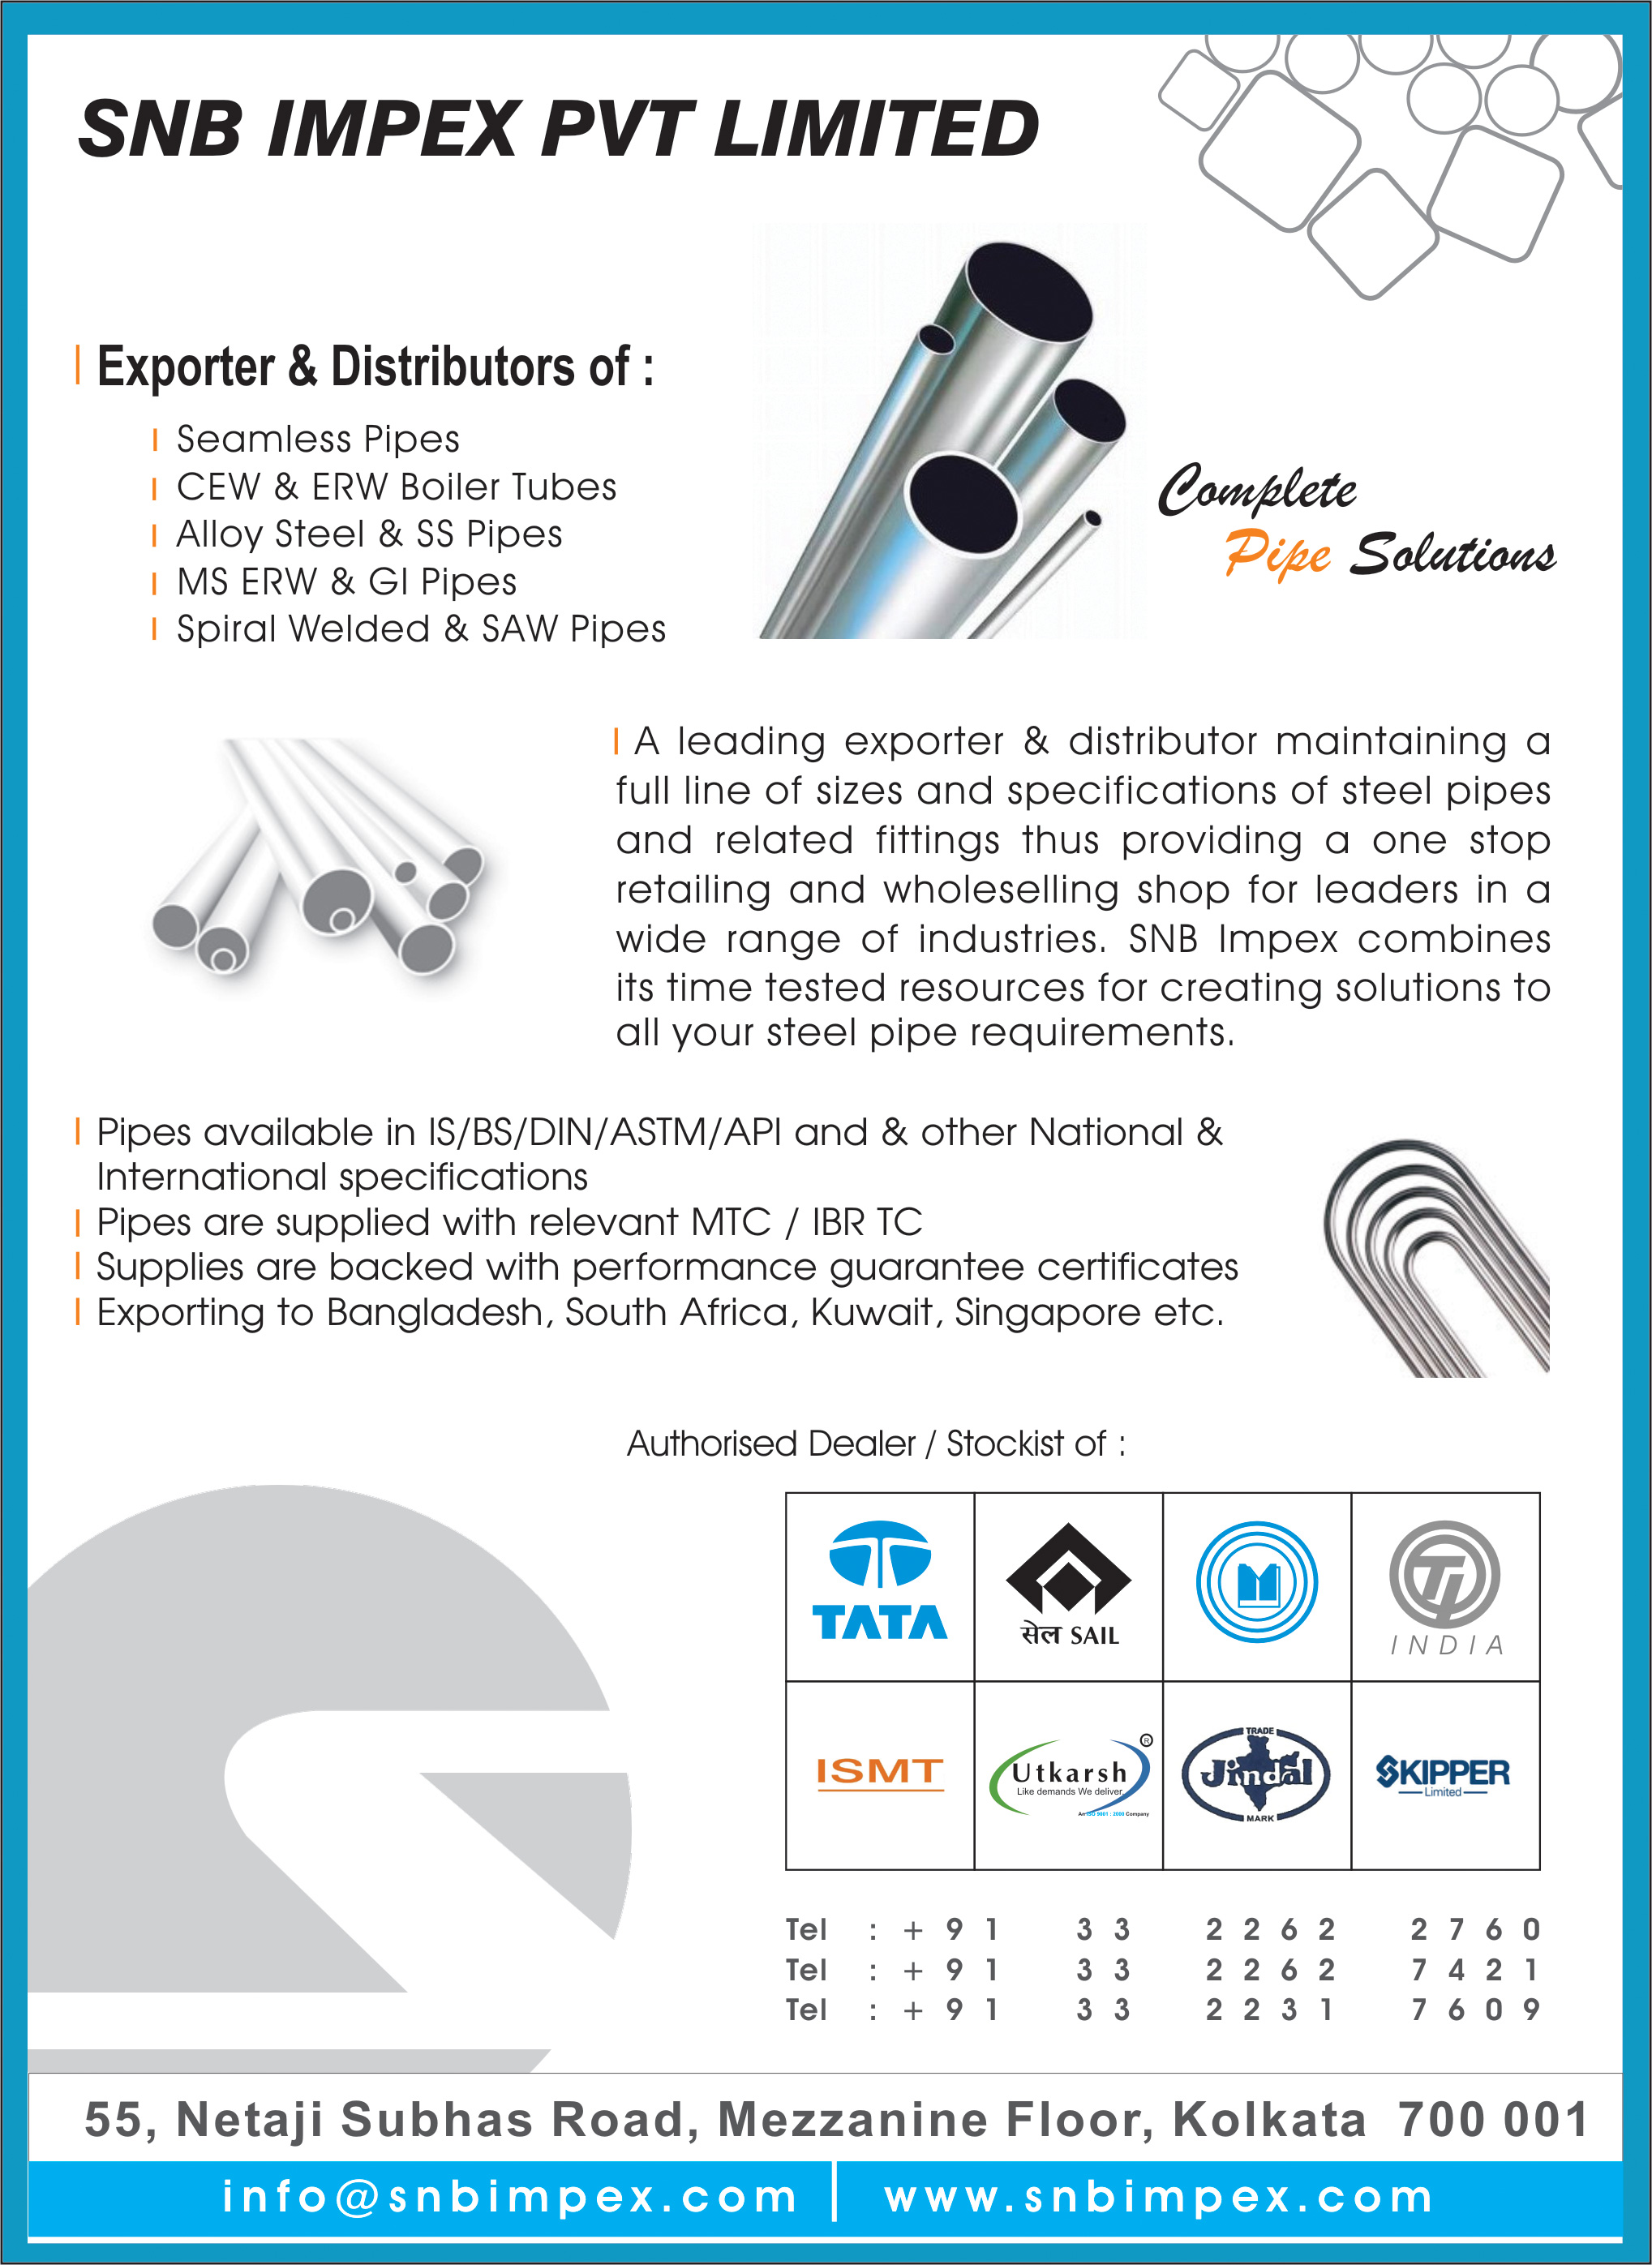 Pipes and Pipe Fittings, SNB IMPEX PVT LTD, Kolkata,  Yellow Pages, Kolkata, West Bengal